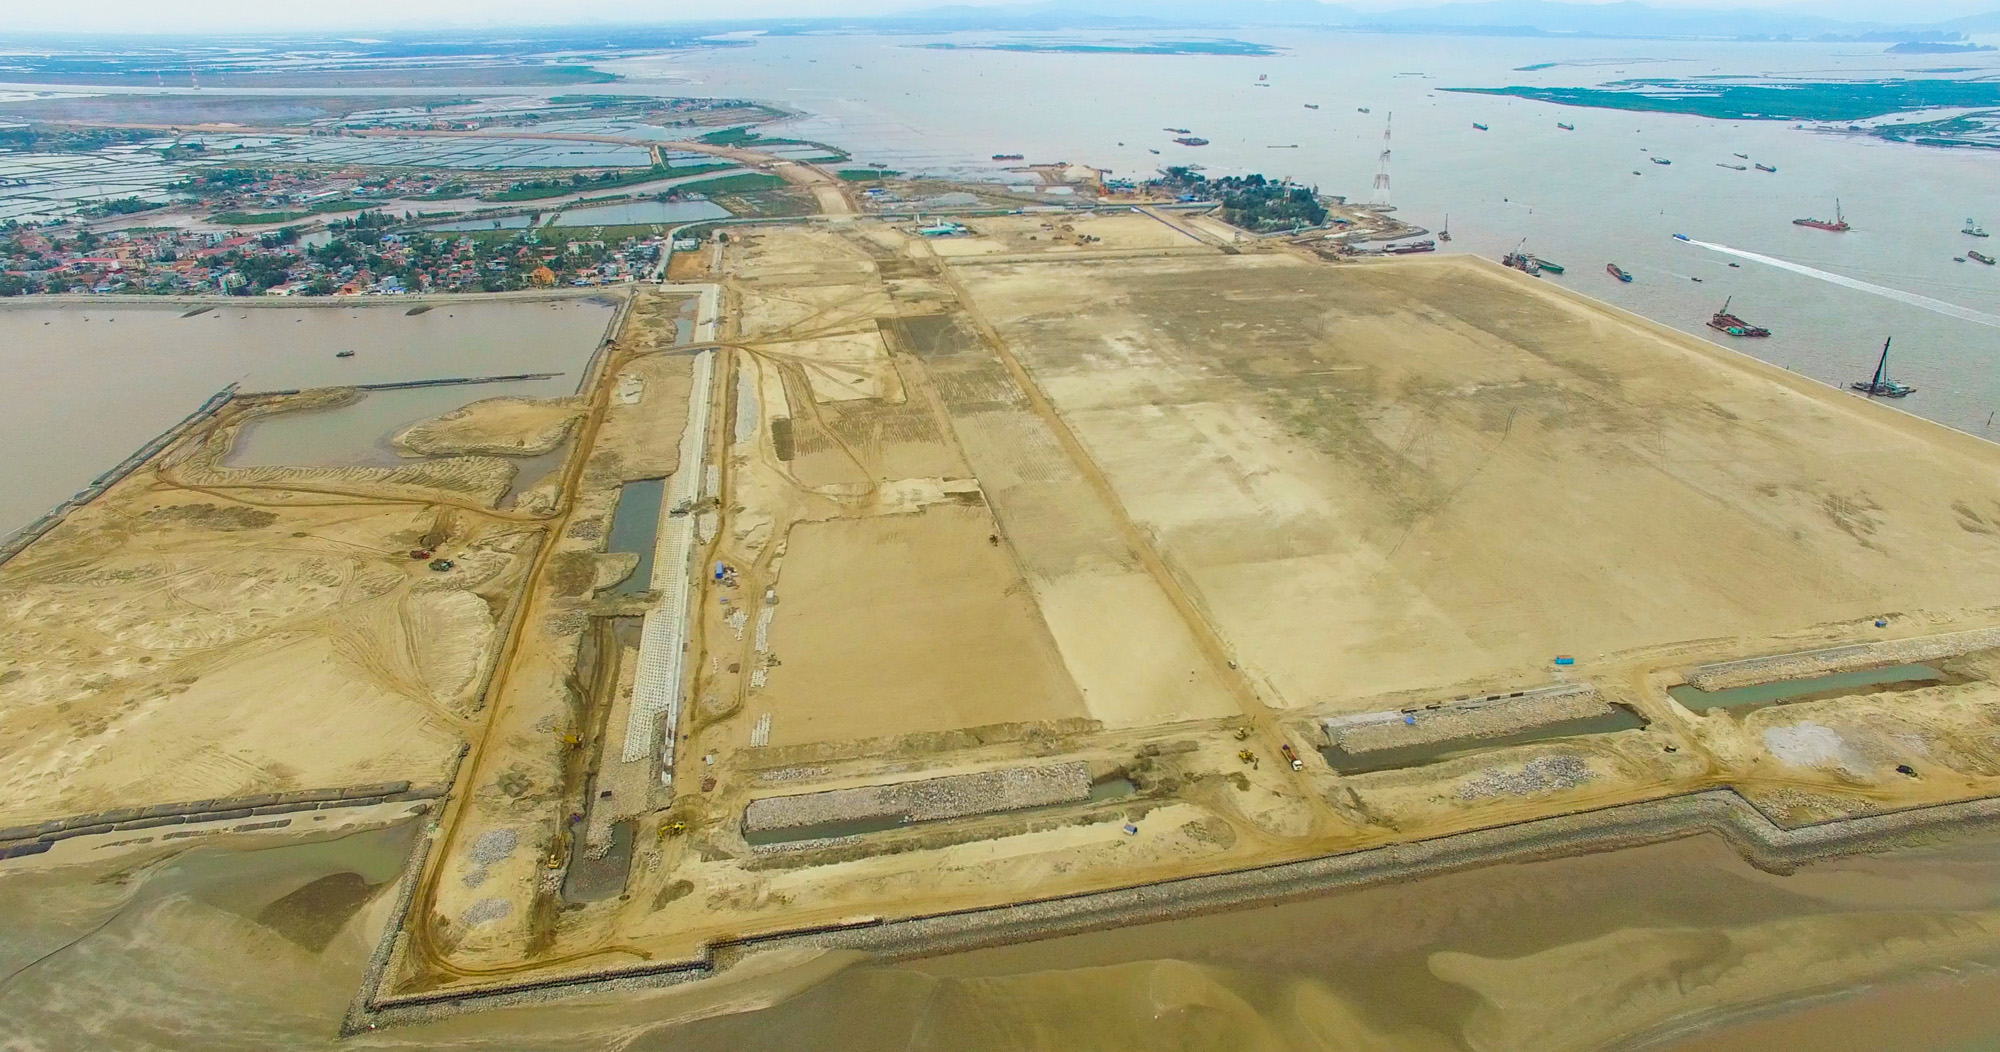 Lach Huyen Port Infrastructure Construction Project